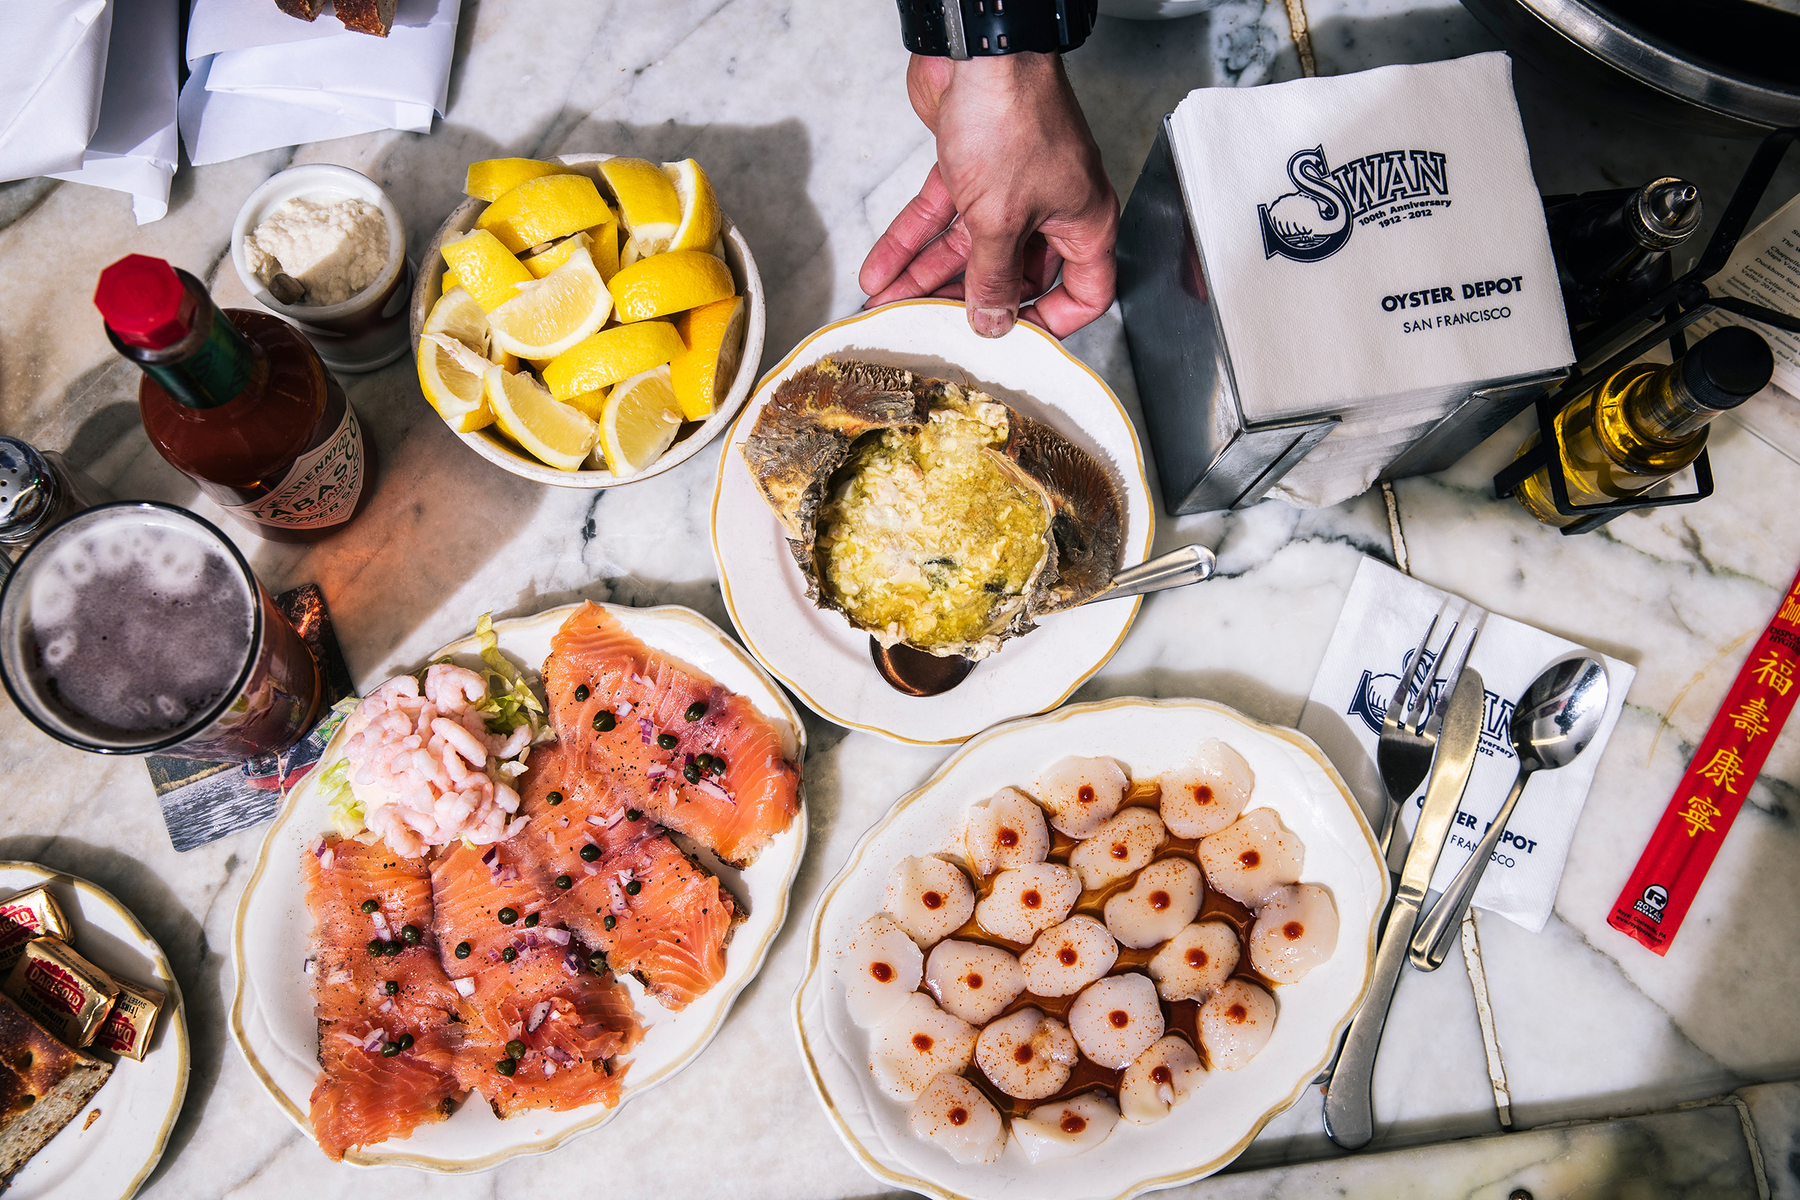 Smoked salmon toast, crab back and a Dozen Eggs pictured at Swan Oyster Depot in San Francisco, Calif. on Tuesday, April 2, 2019.